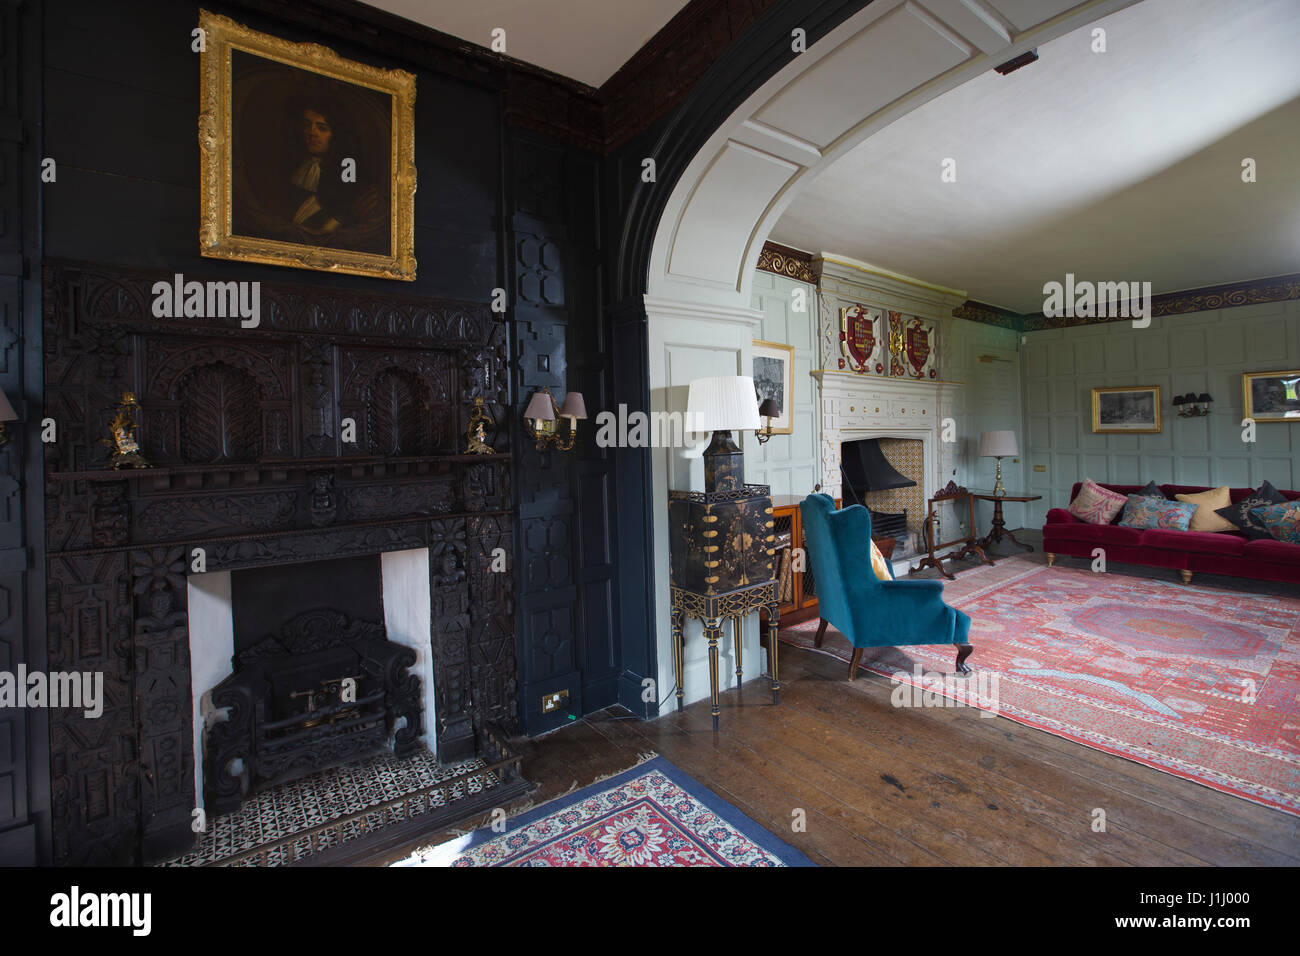 Elmore Court stately home in Gloucestershire, owned by Anselm Guise after inheriting the 750-year old property from - Stock Image